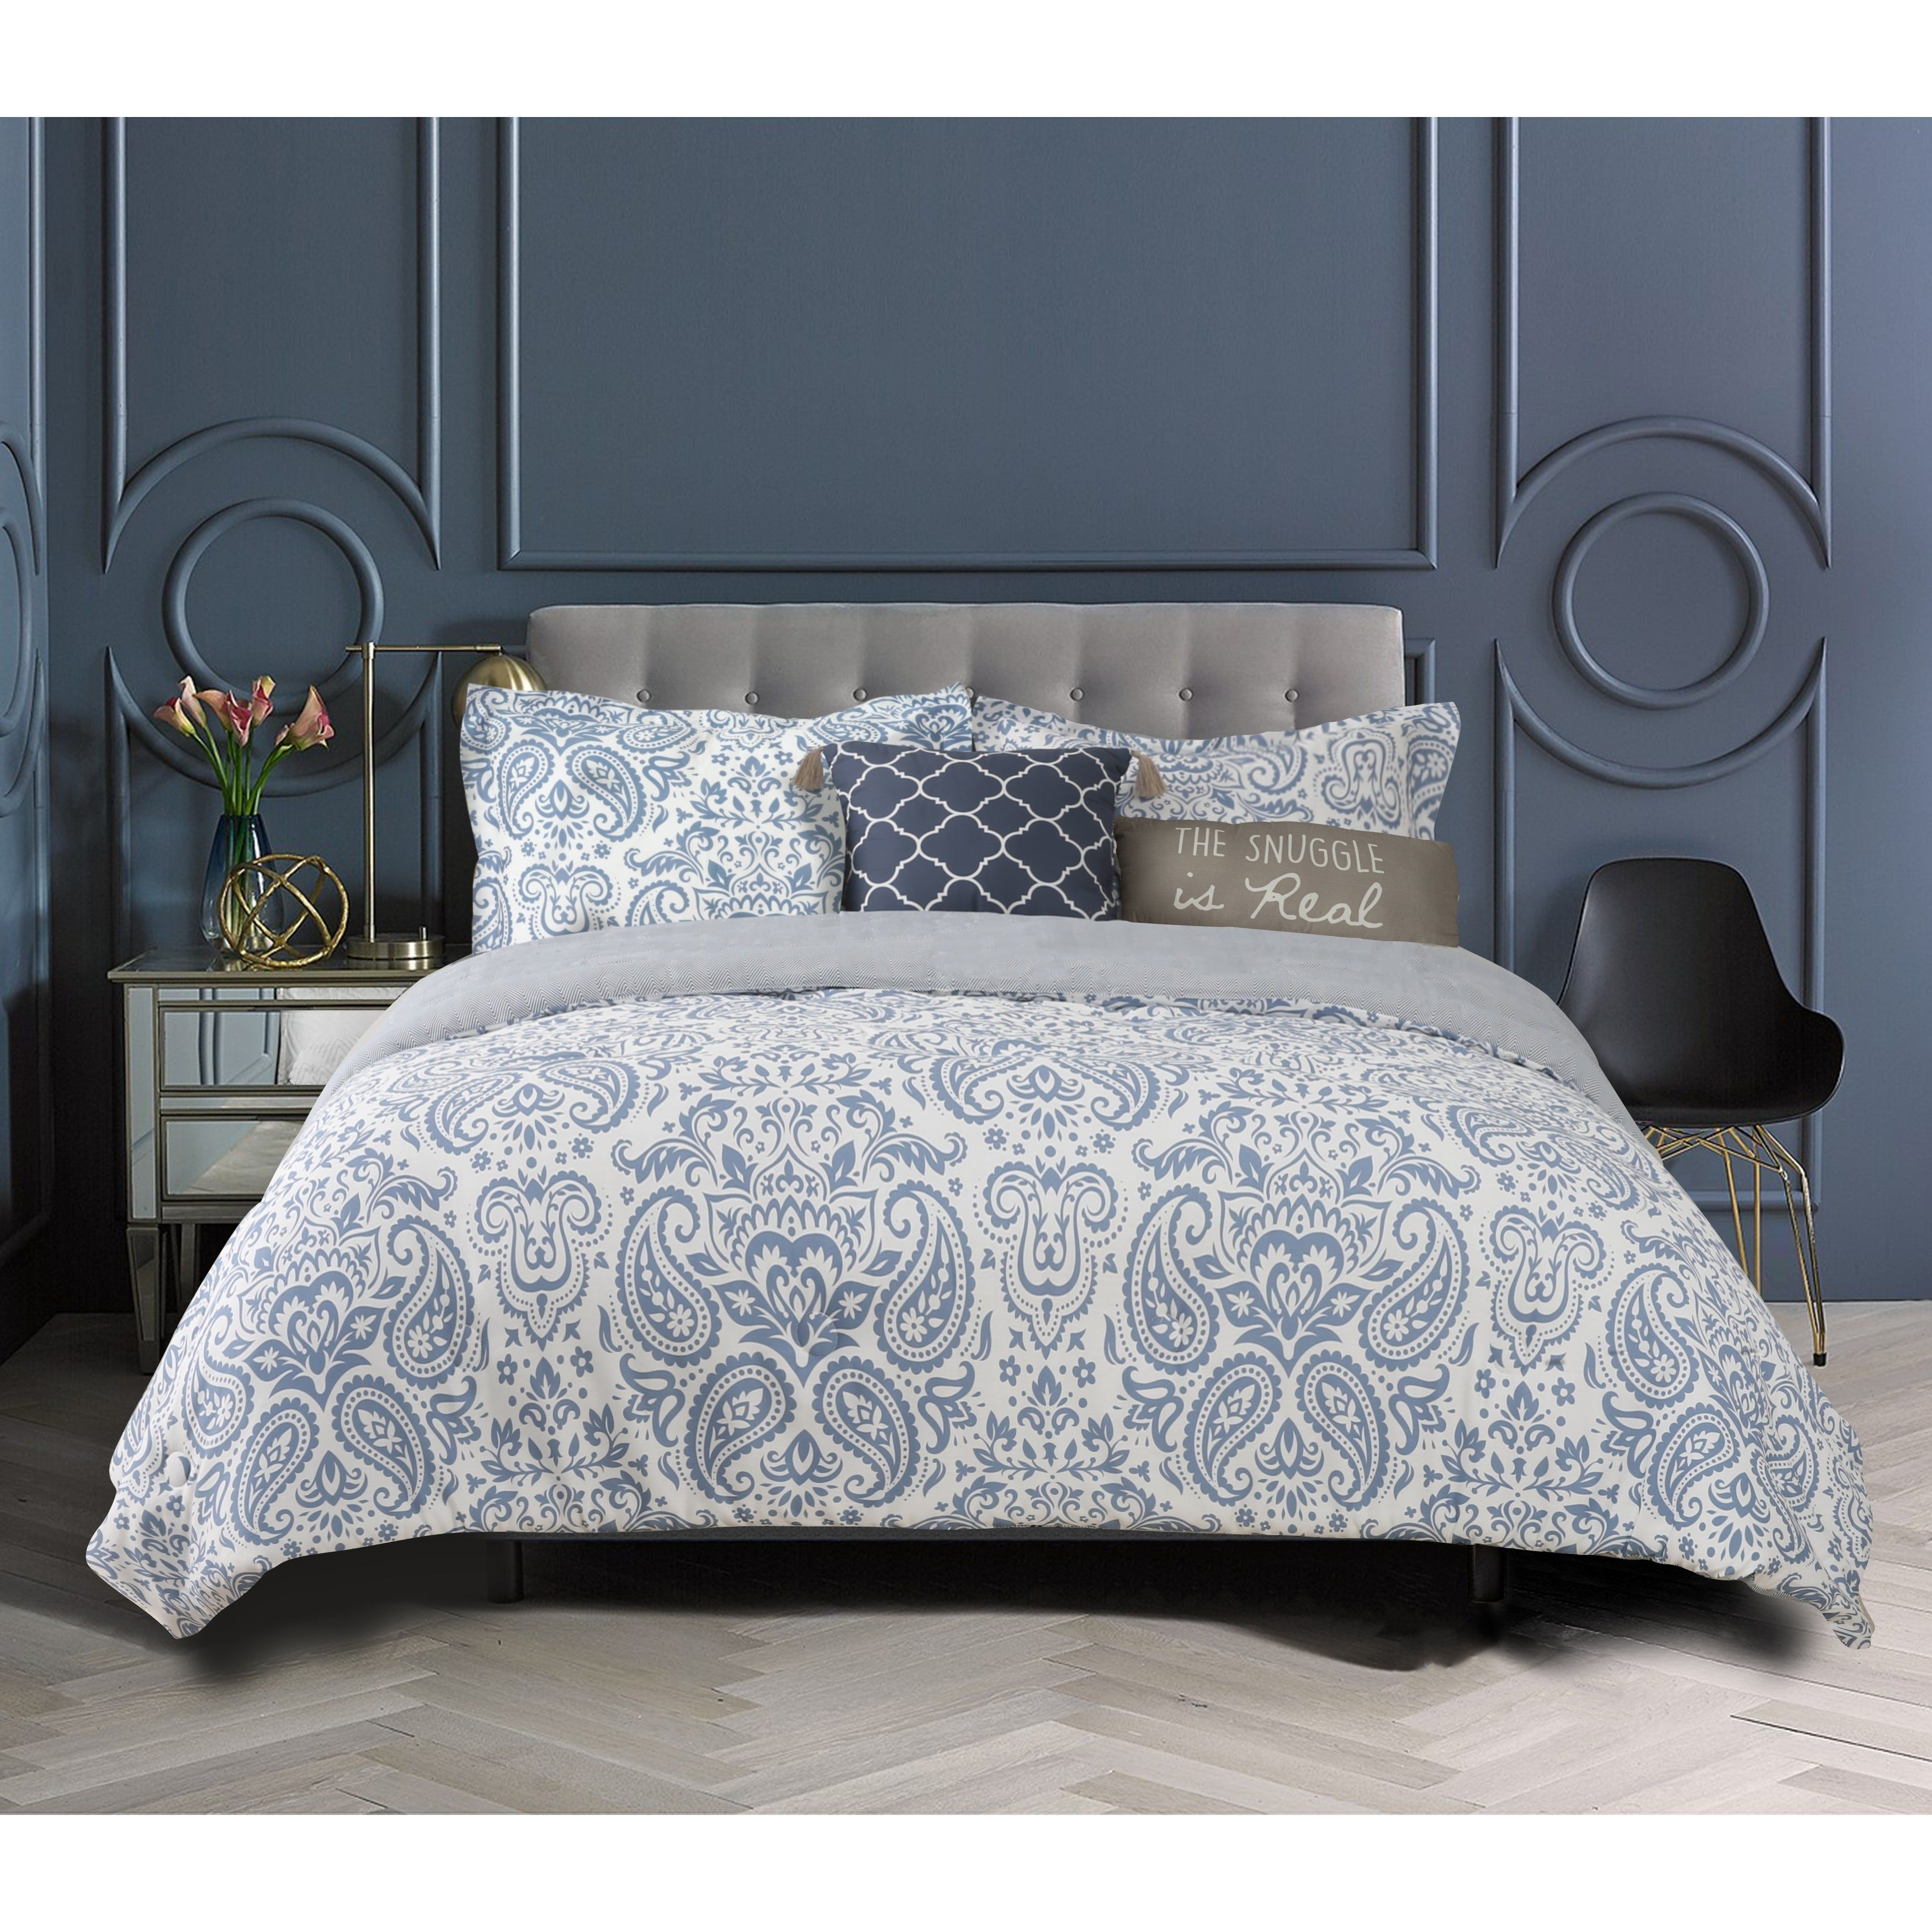 The Curated Nomad Wetmore 5piece Cotton Comforter Set in